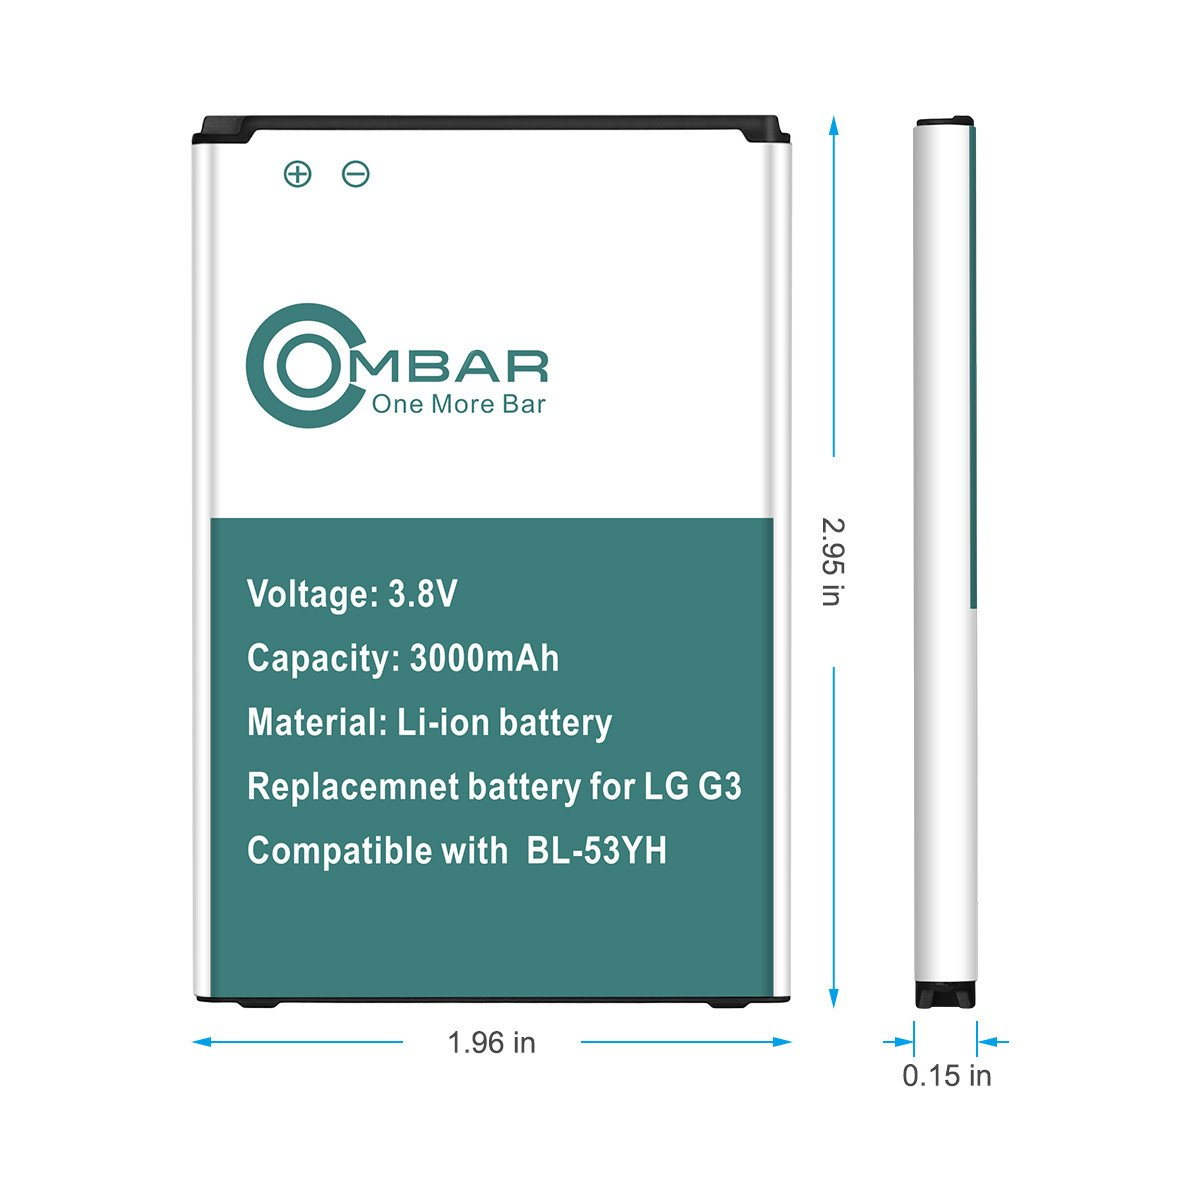 Ombar 3000mah Replacement Battery for LG G3, BL-53YH Battery, 12-Month Warranty